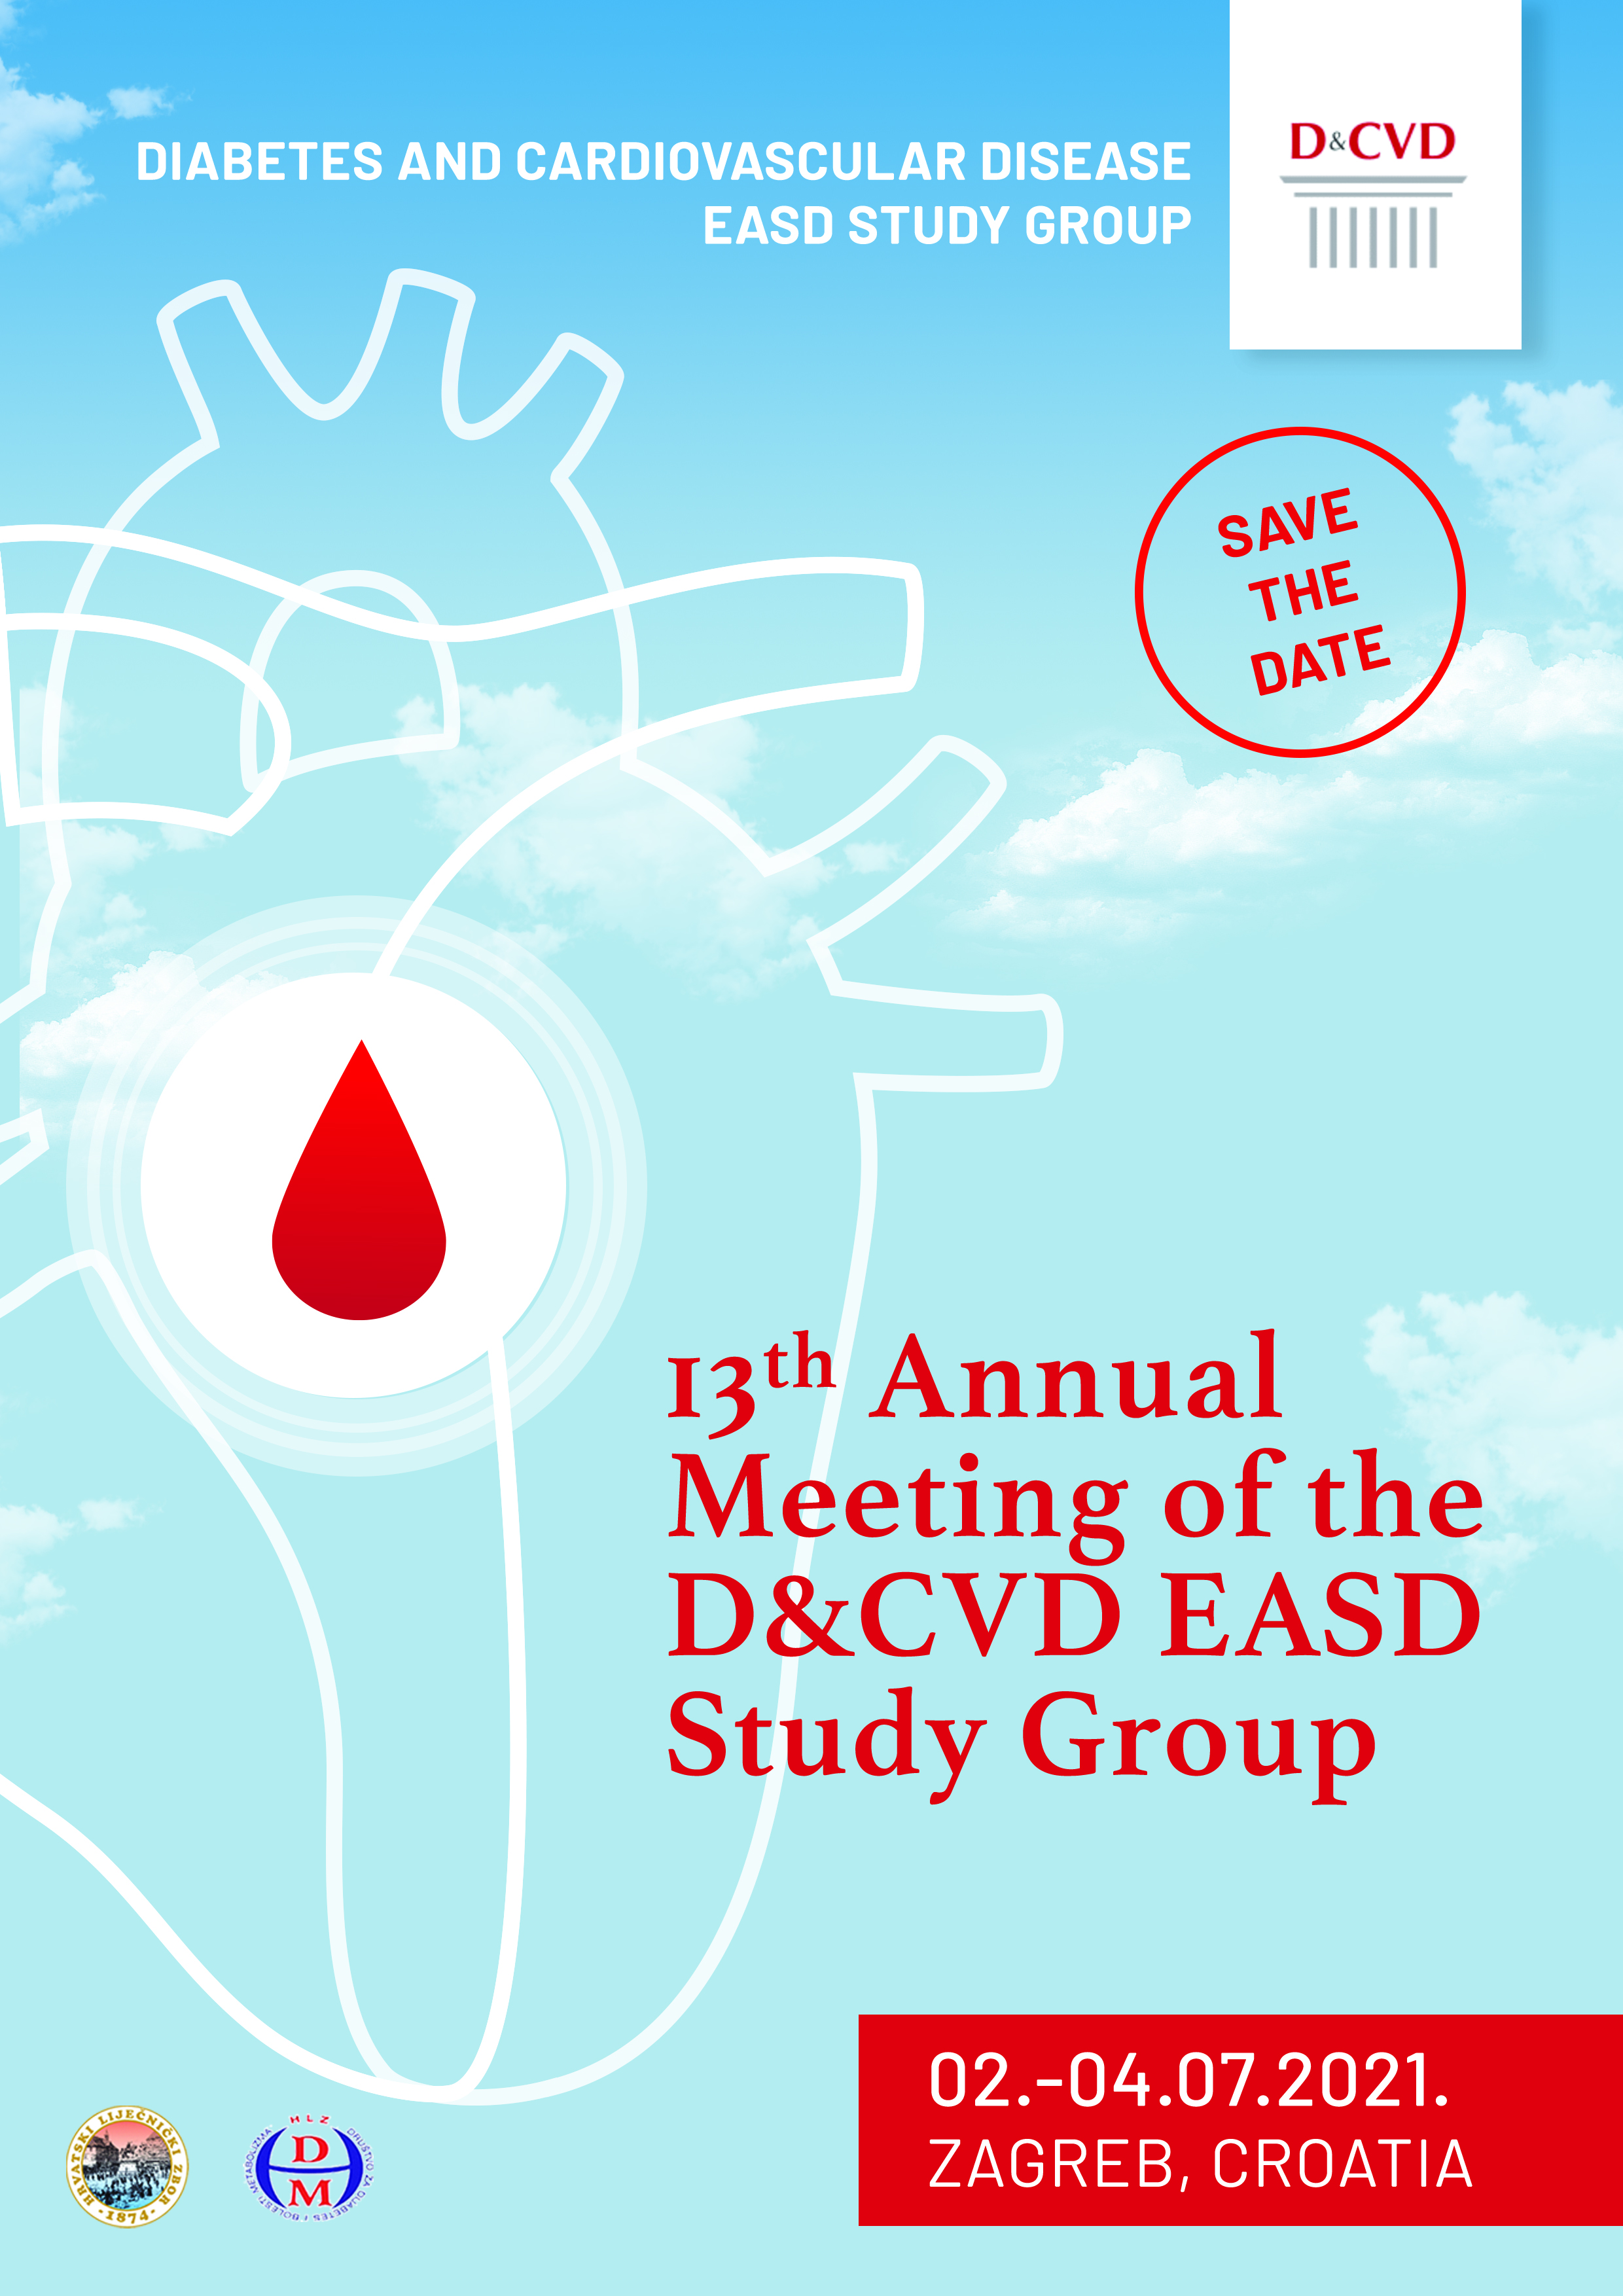 13th Annual Meeting of D&CVD EASD Study Group, Zagreb 2.-4.7.2021.